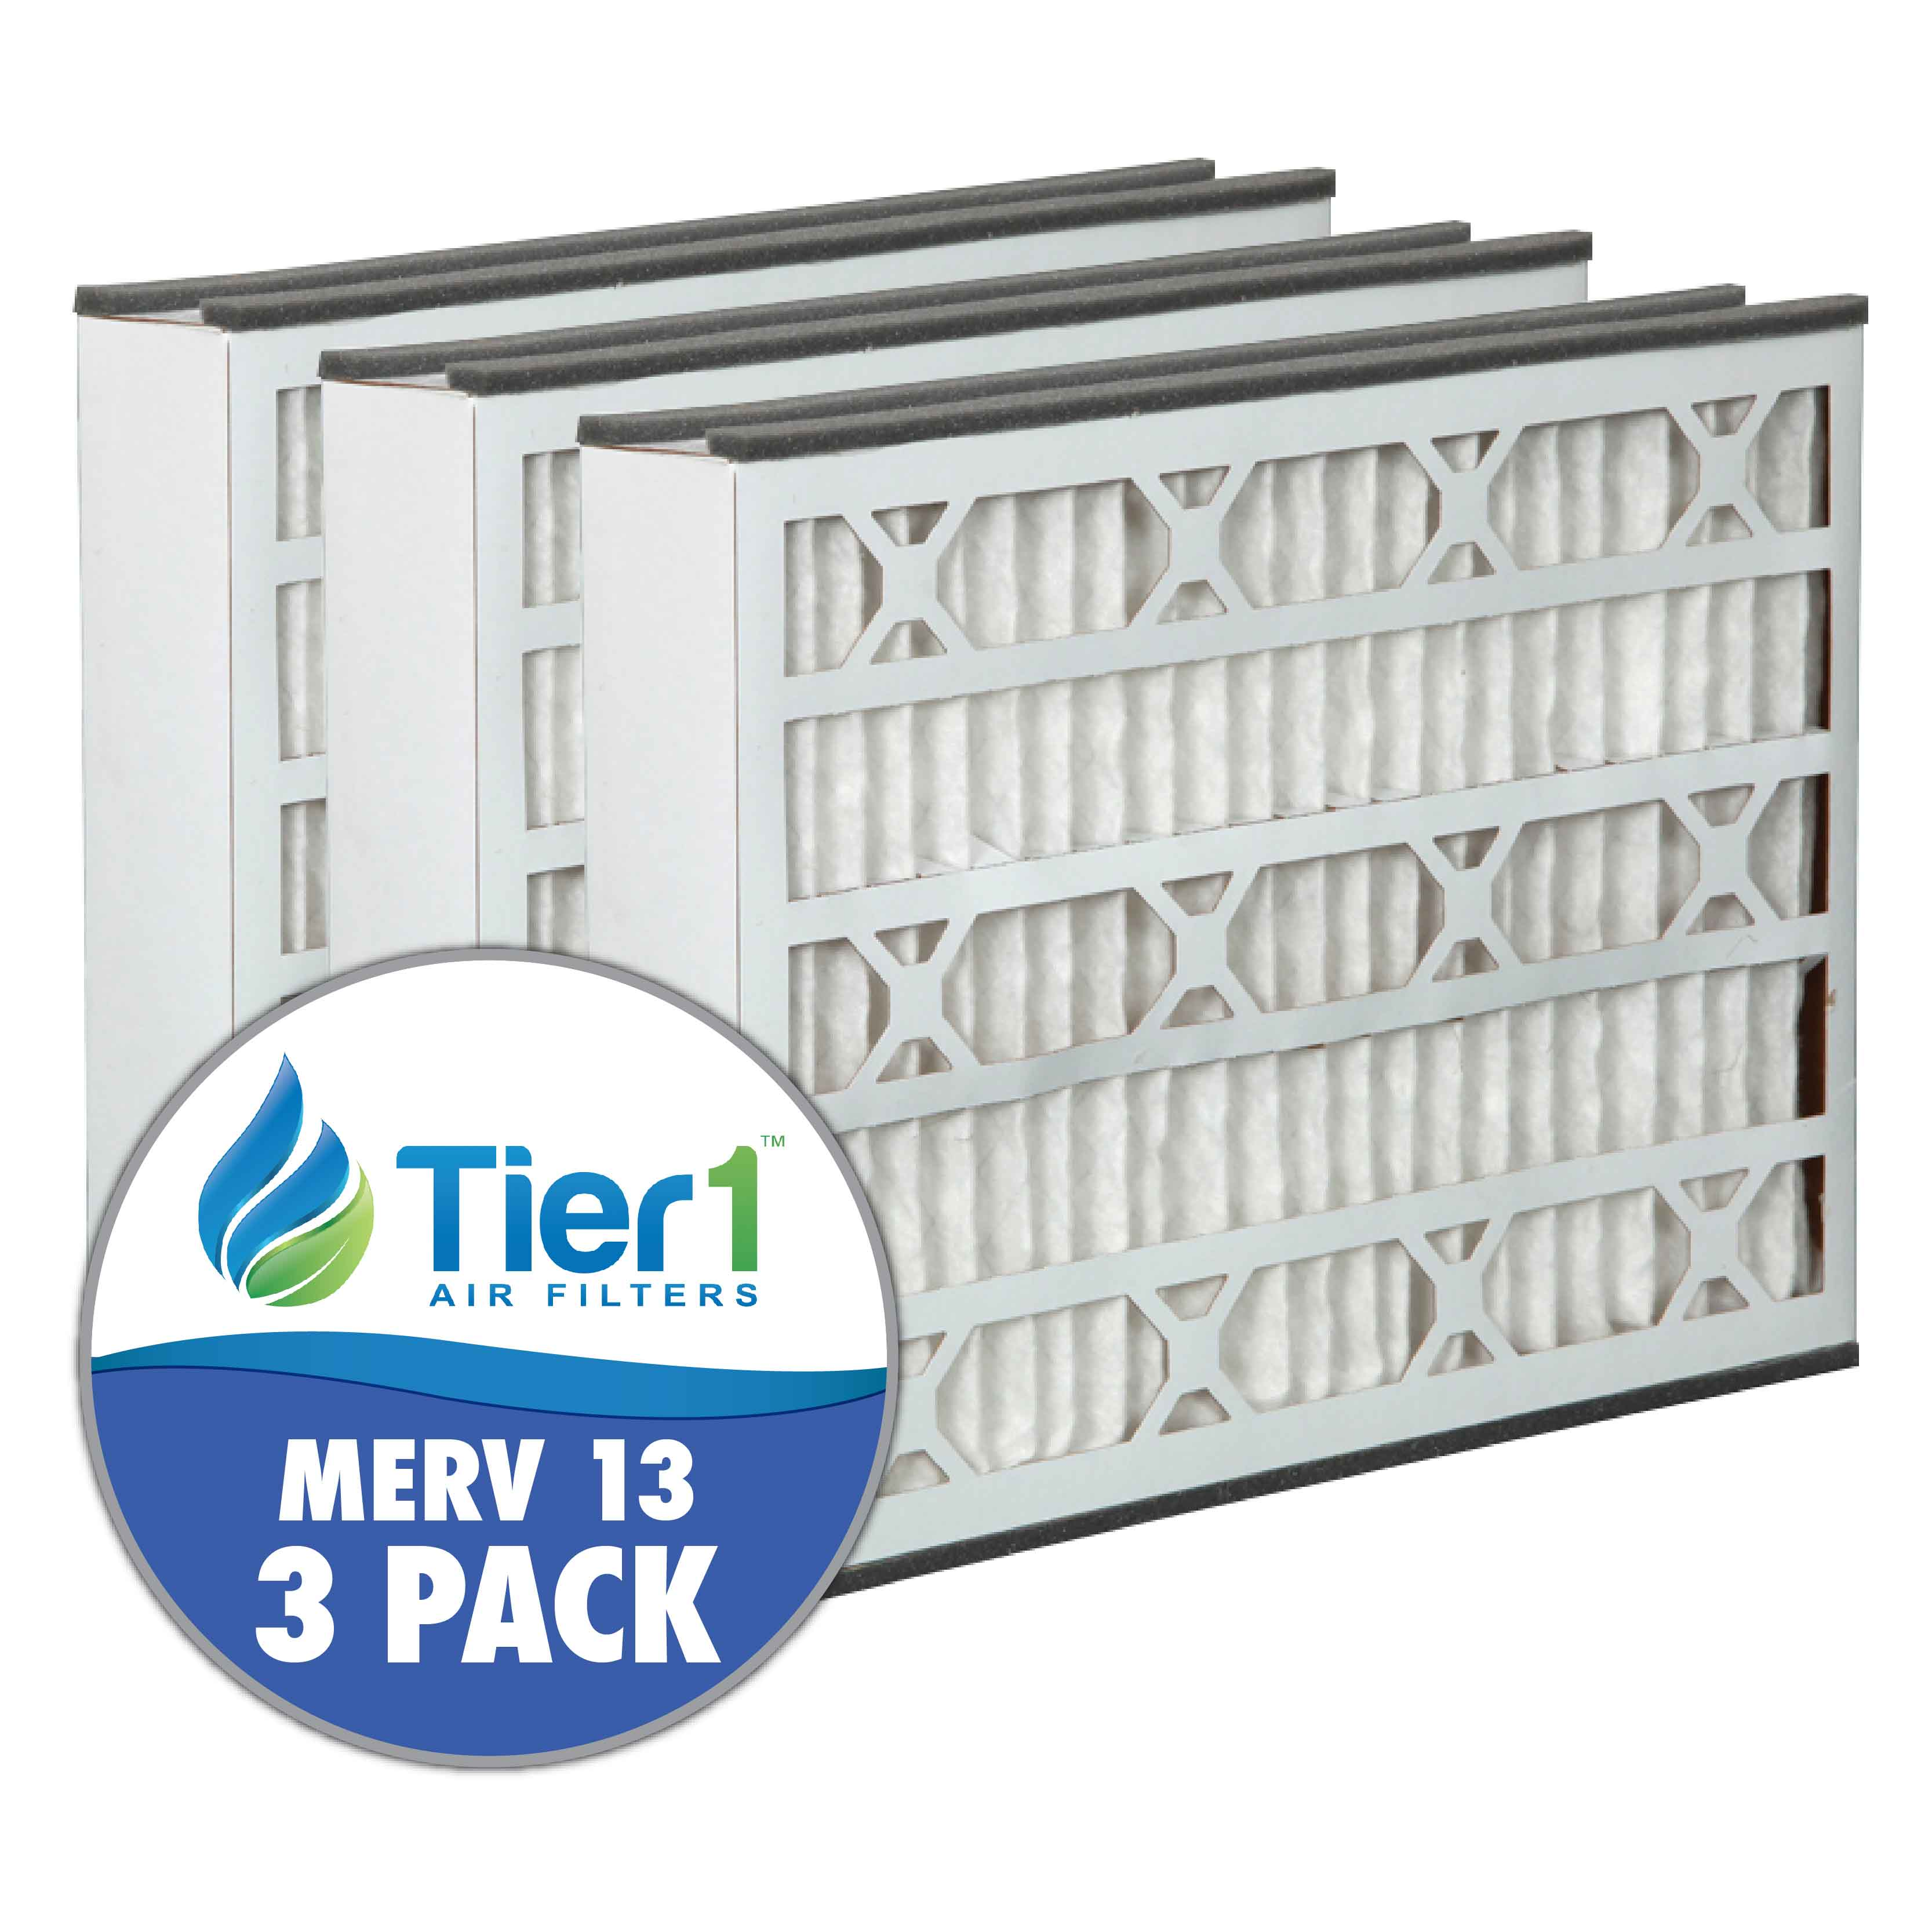 Tier1 brand replacement for Bryant - 16 x 25 x 3 - MERV 13 (3- Pack) TIER1-DPFR16X25X3M13DBT